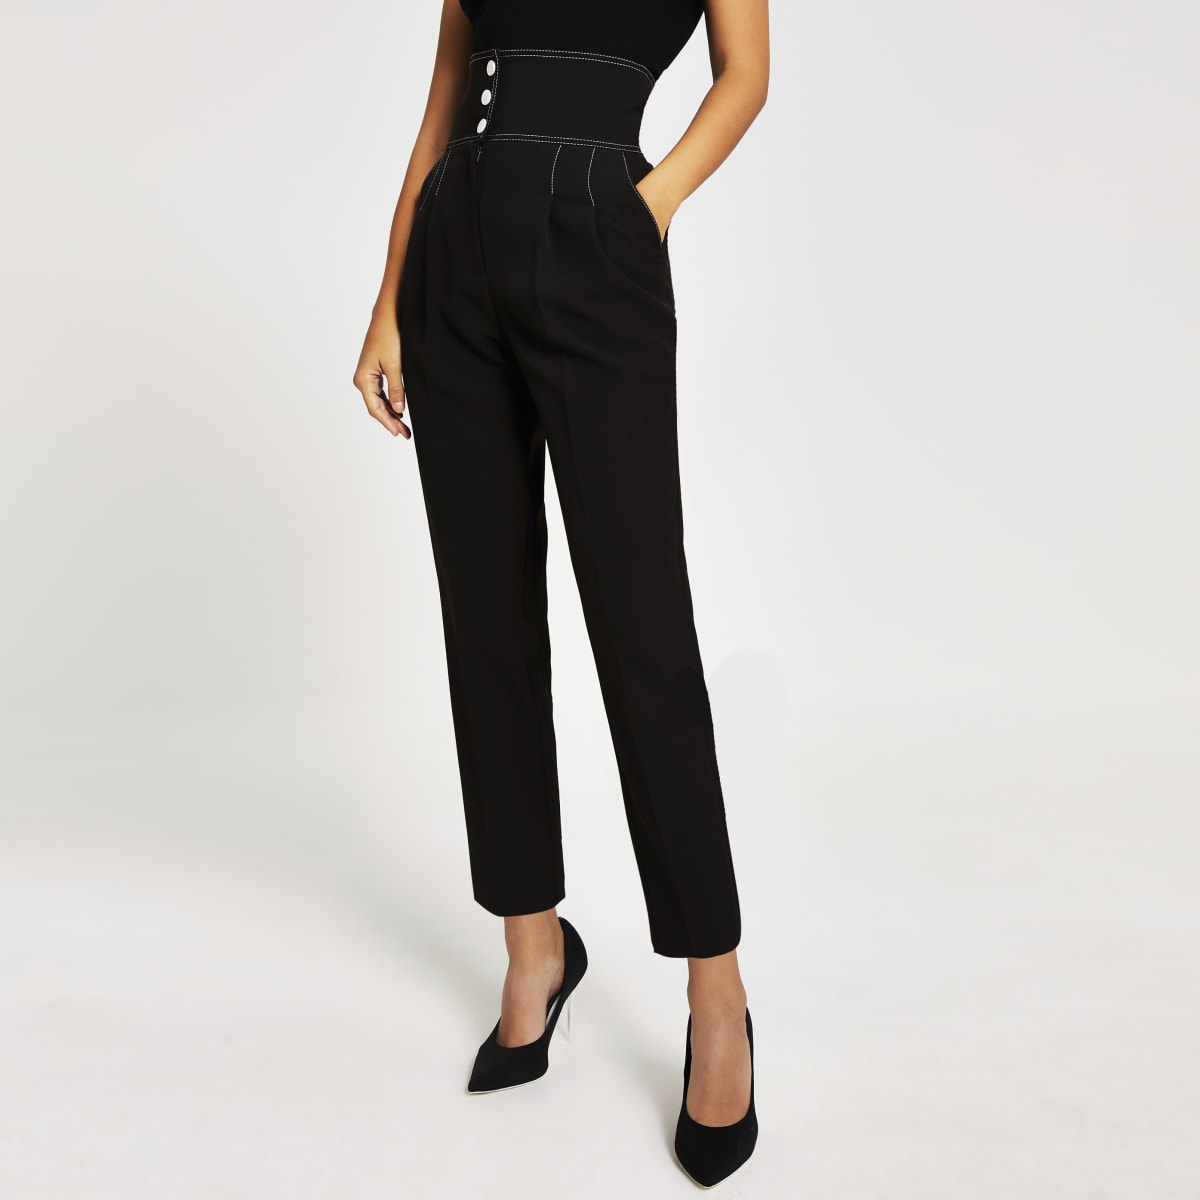 Black high waisted contrast stitch trousers